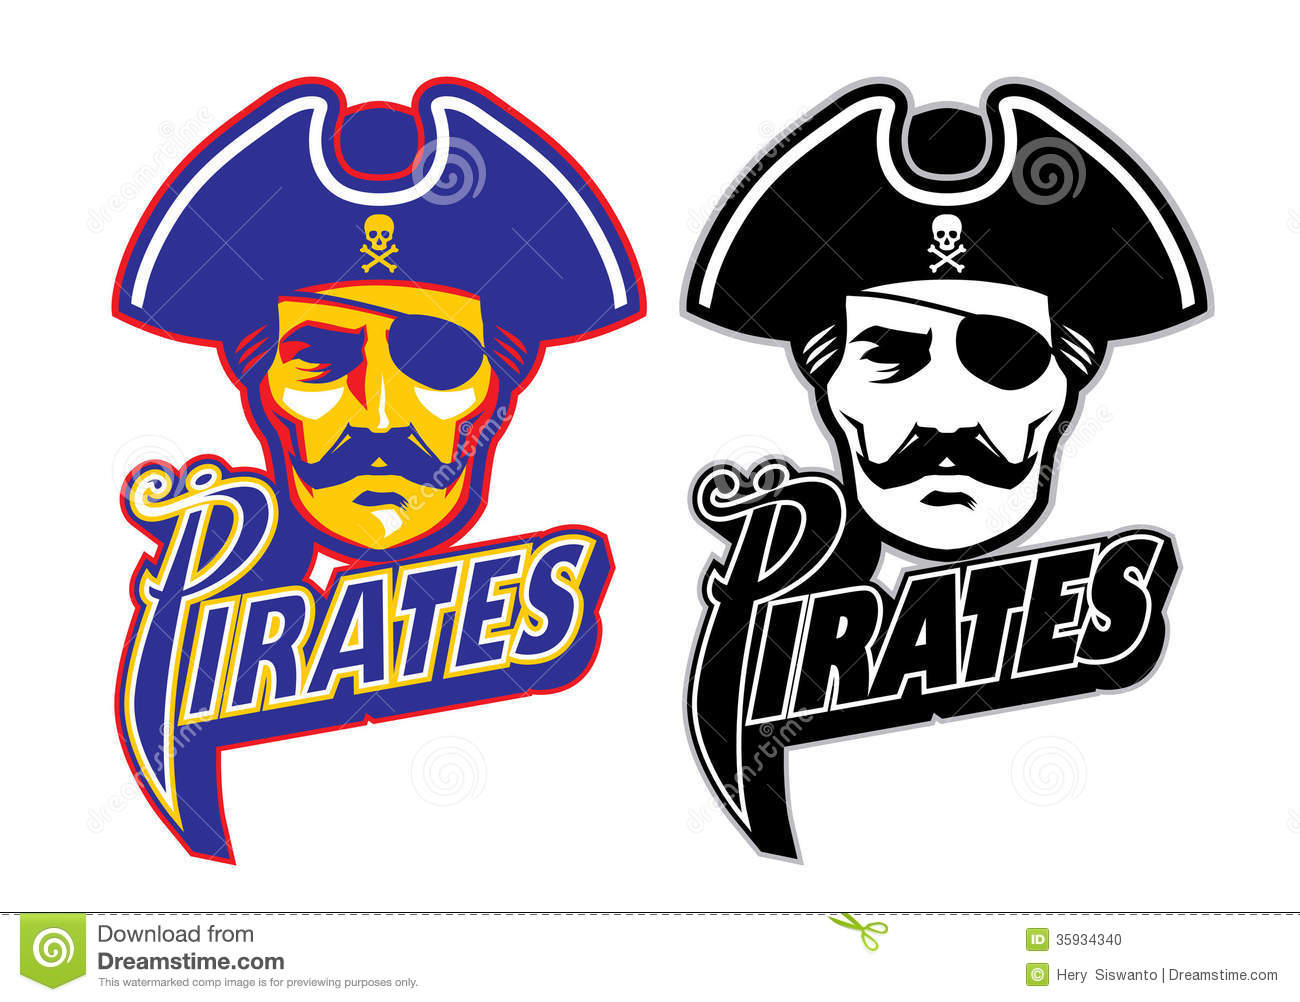 Pirate face vector - photo#21